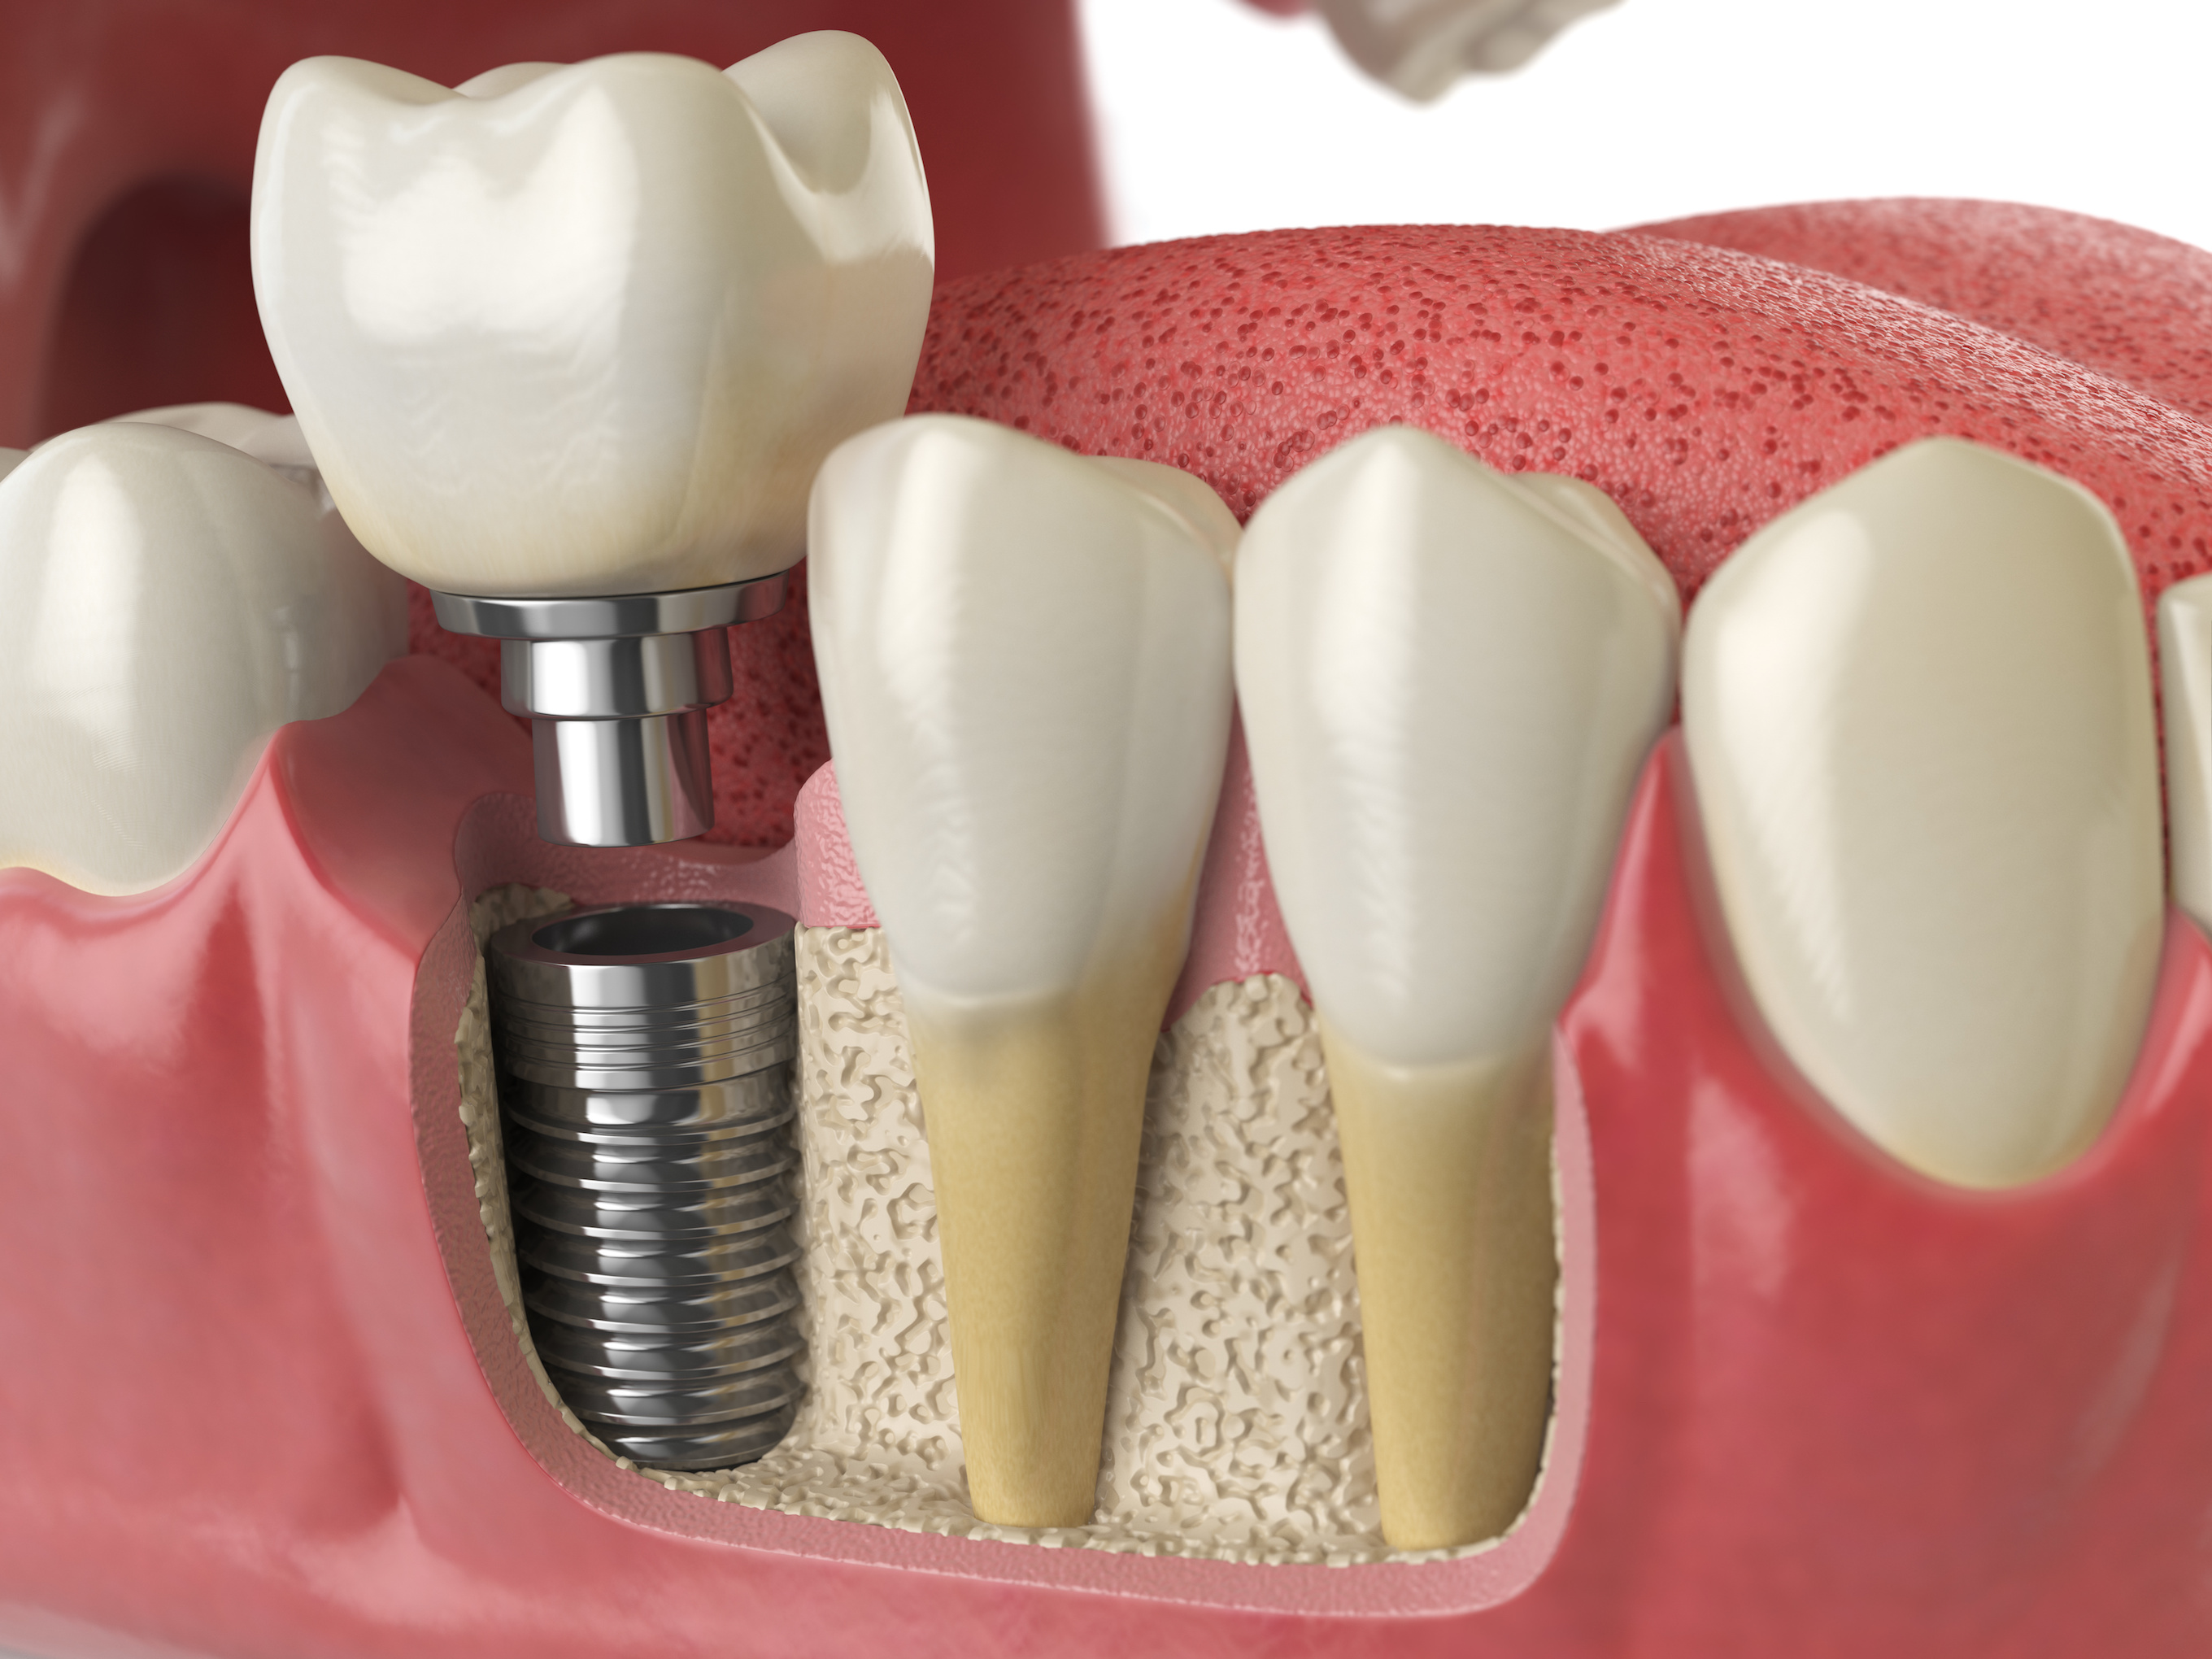 Dental Implant FAQs: Our Experts Answer Your Top Questions!